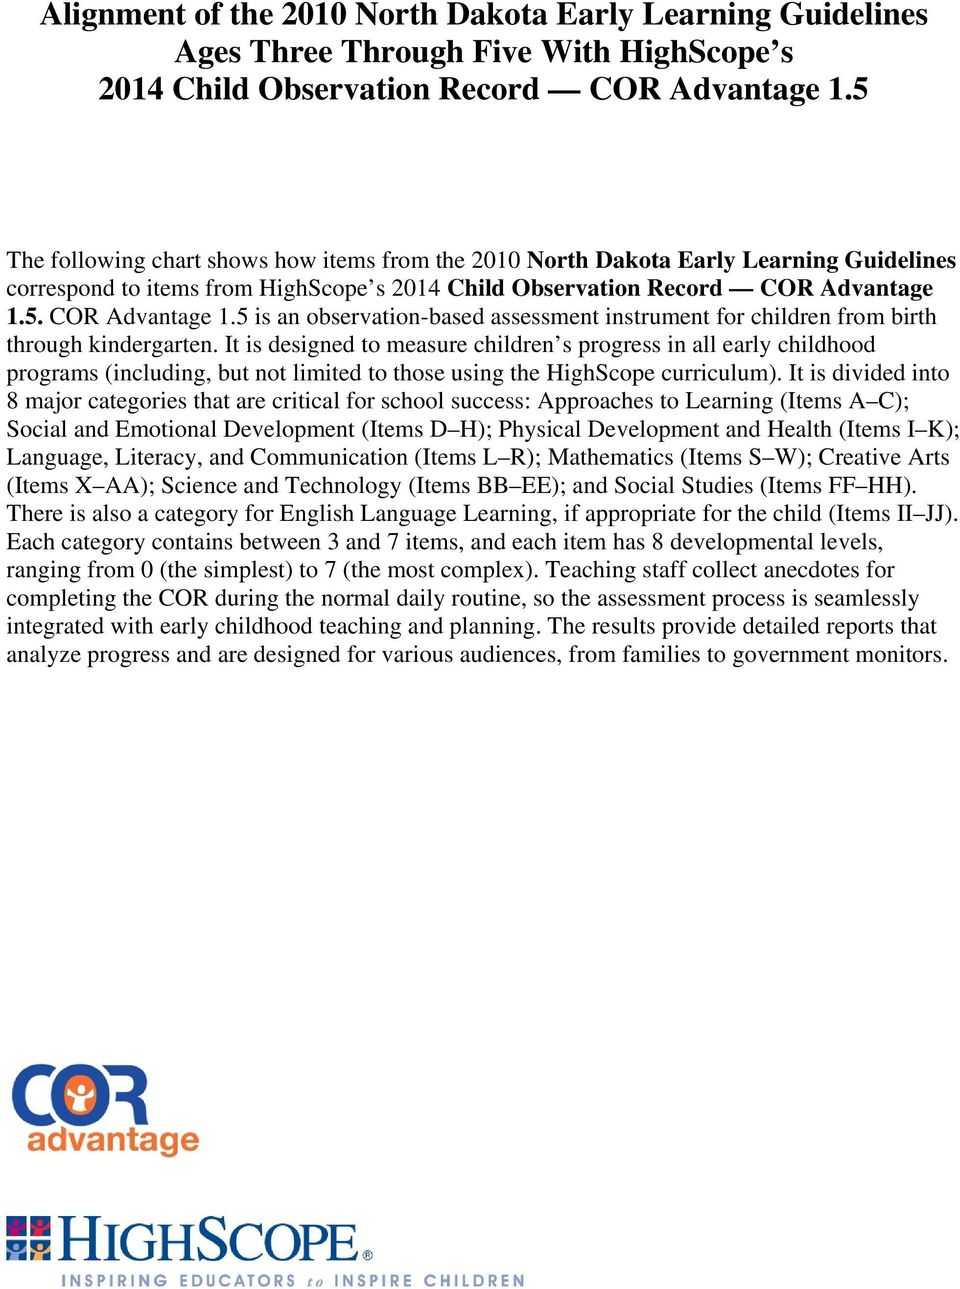 5. COR Advantage 1.5 is an observation-based assessment instrument for children from birth through kindergarten.